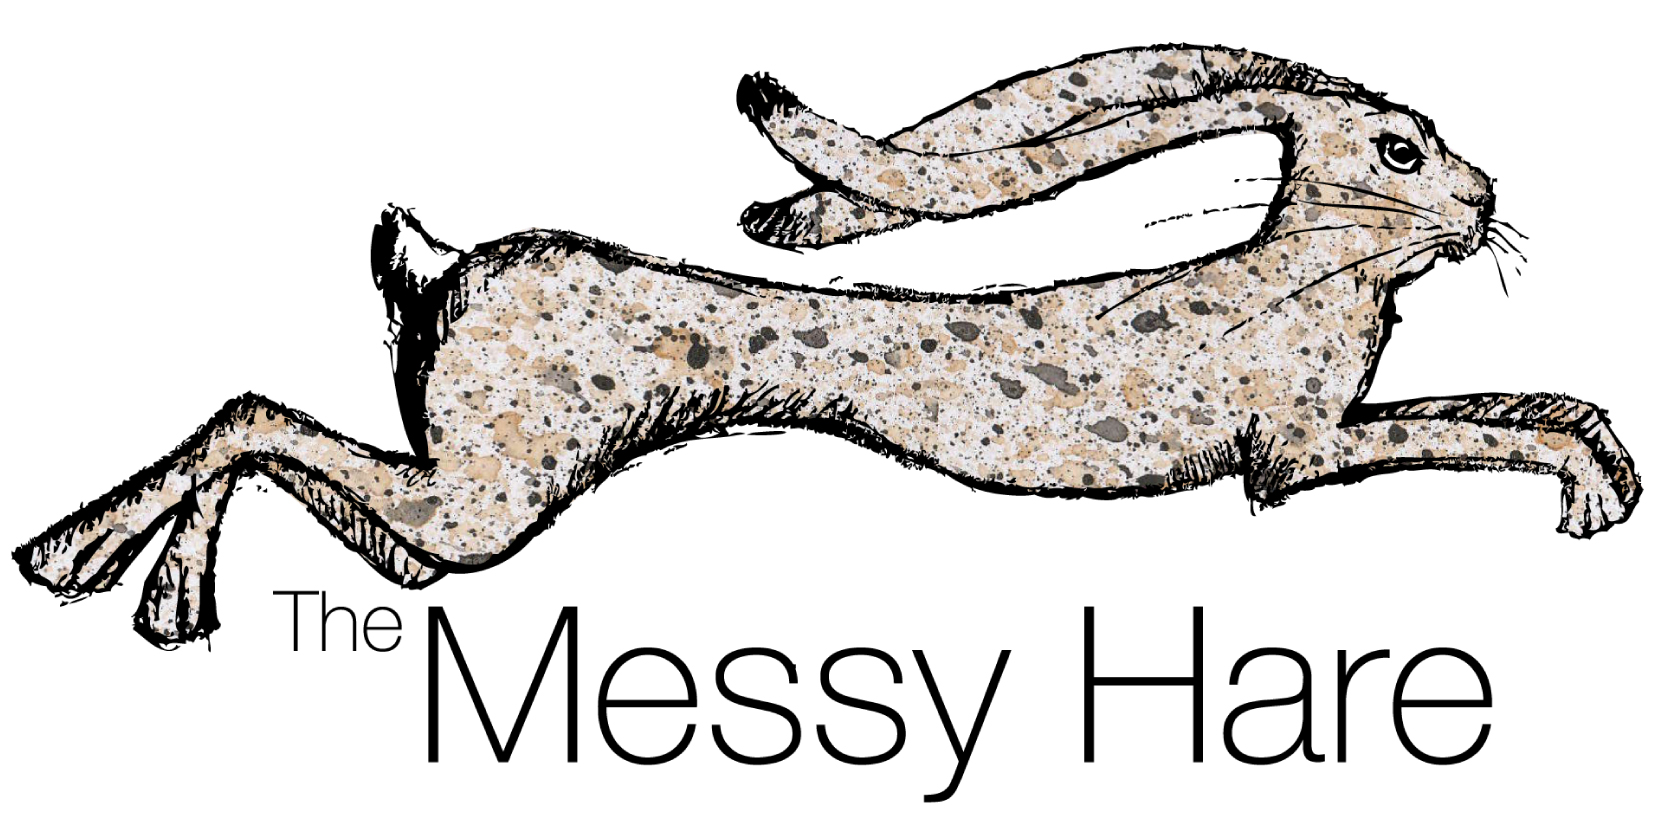 The Messy Hare Gallery & Coffee Shop